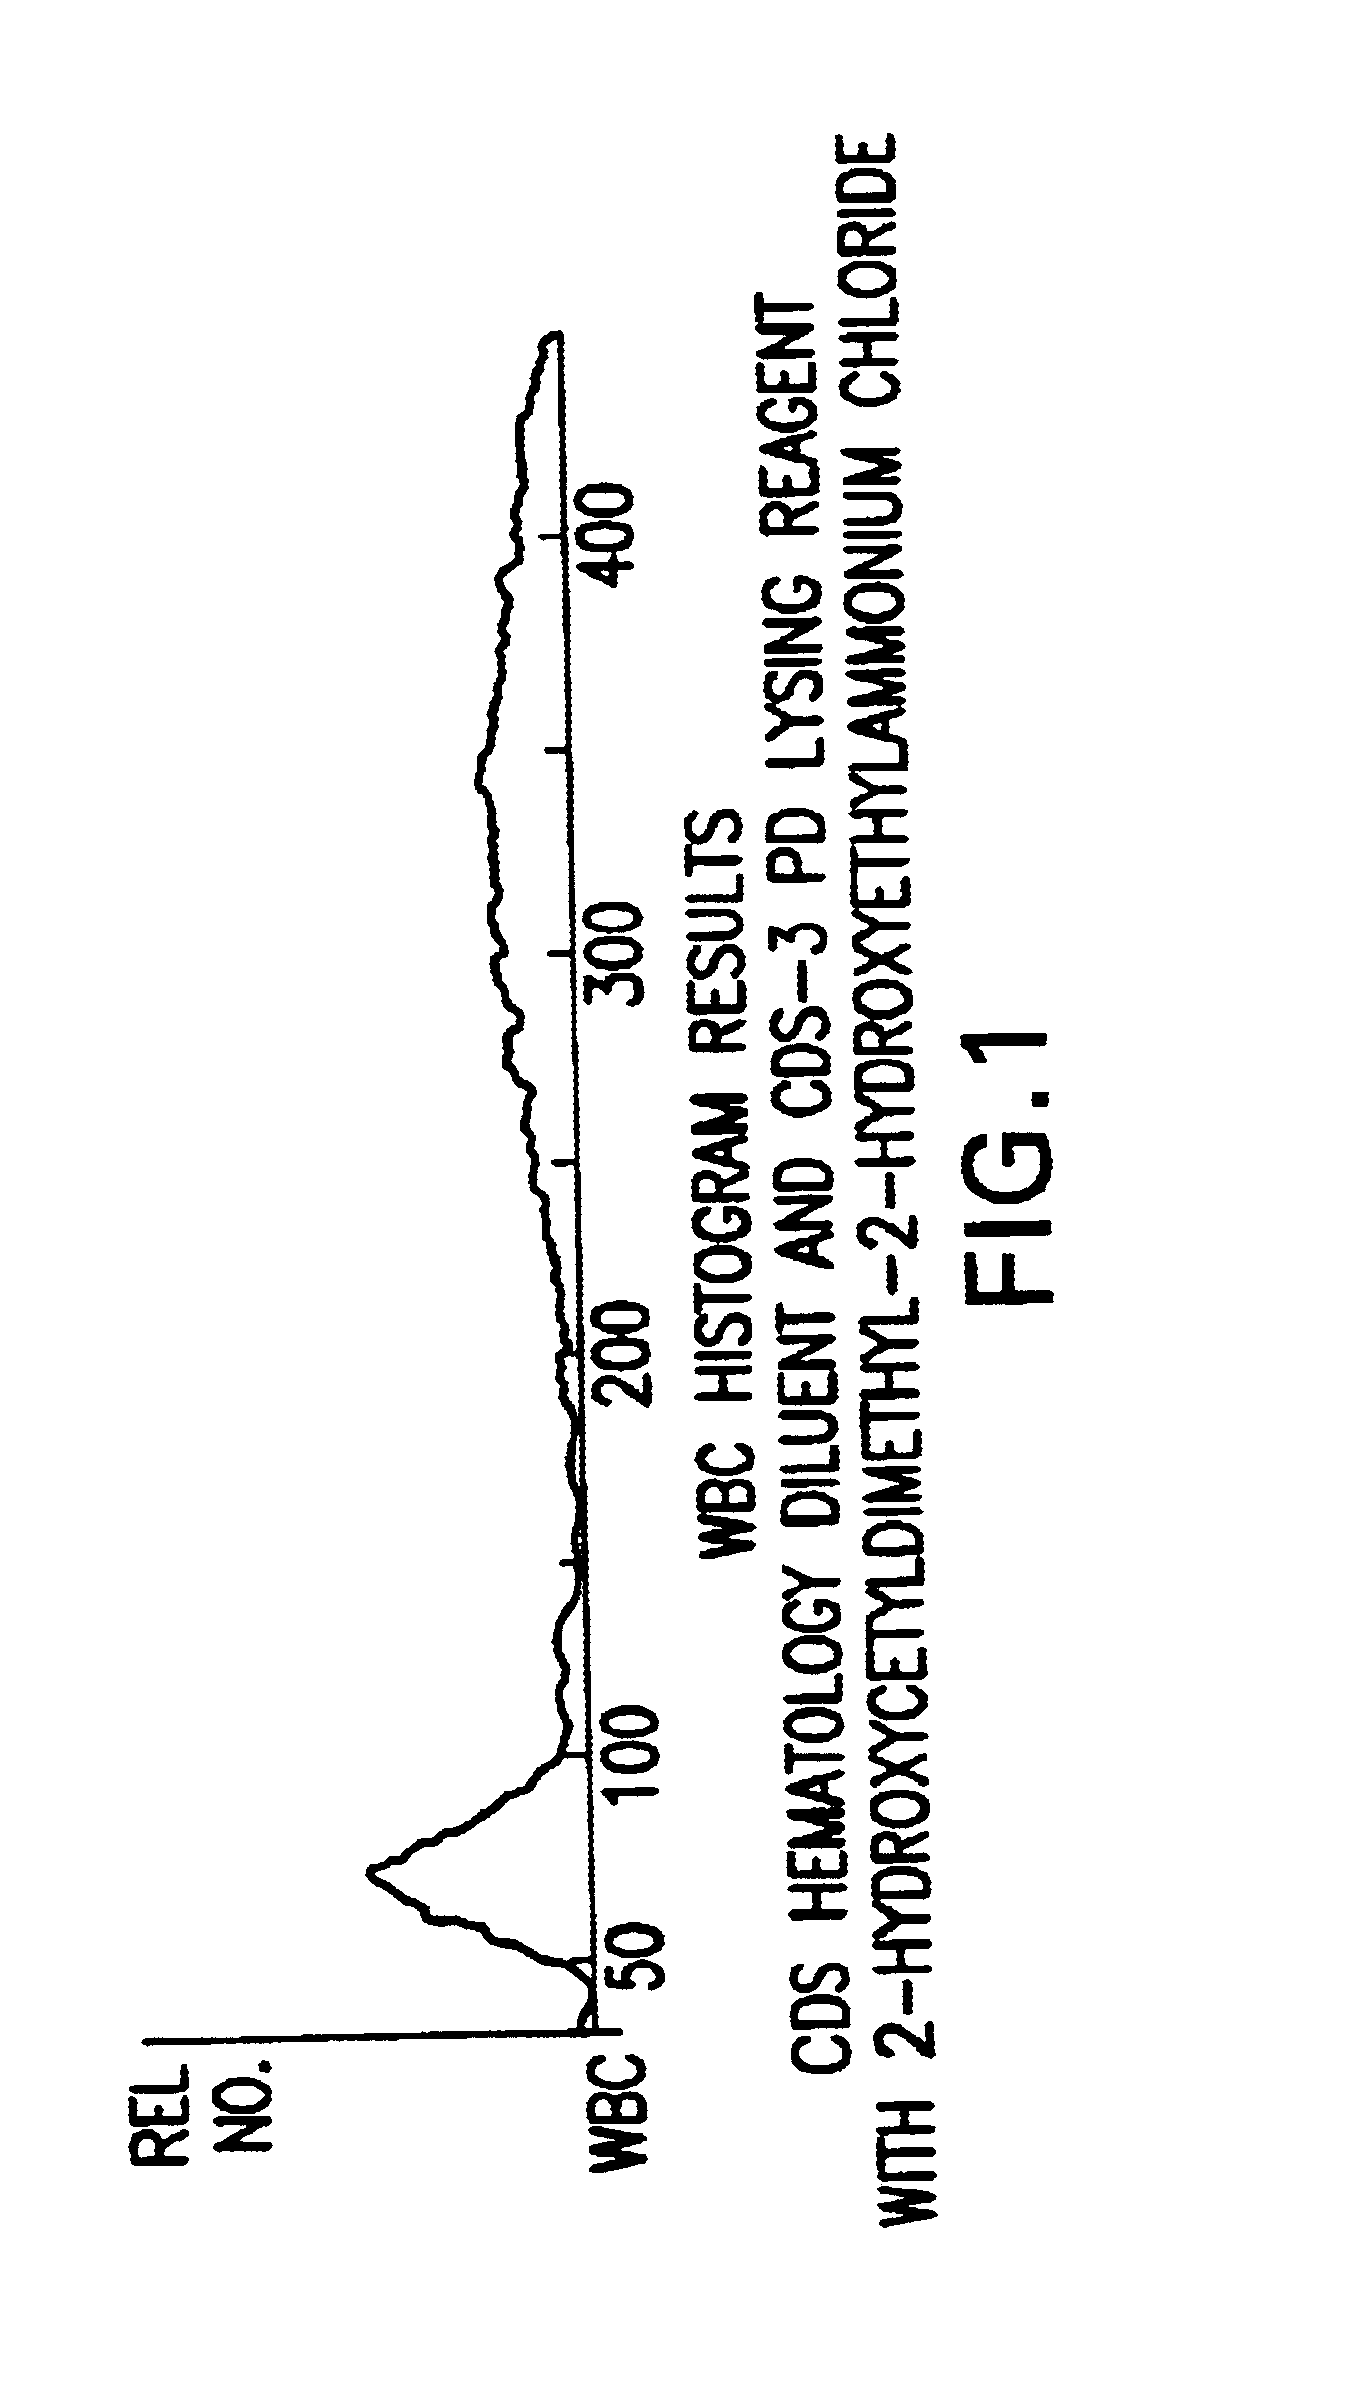 Reagent system and method for enumeration of red blood cells